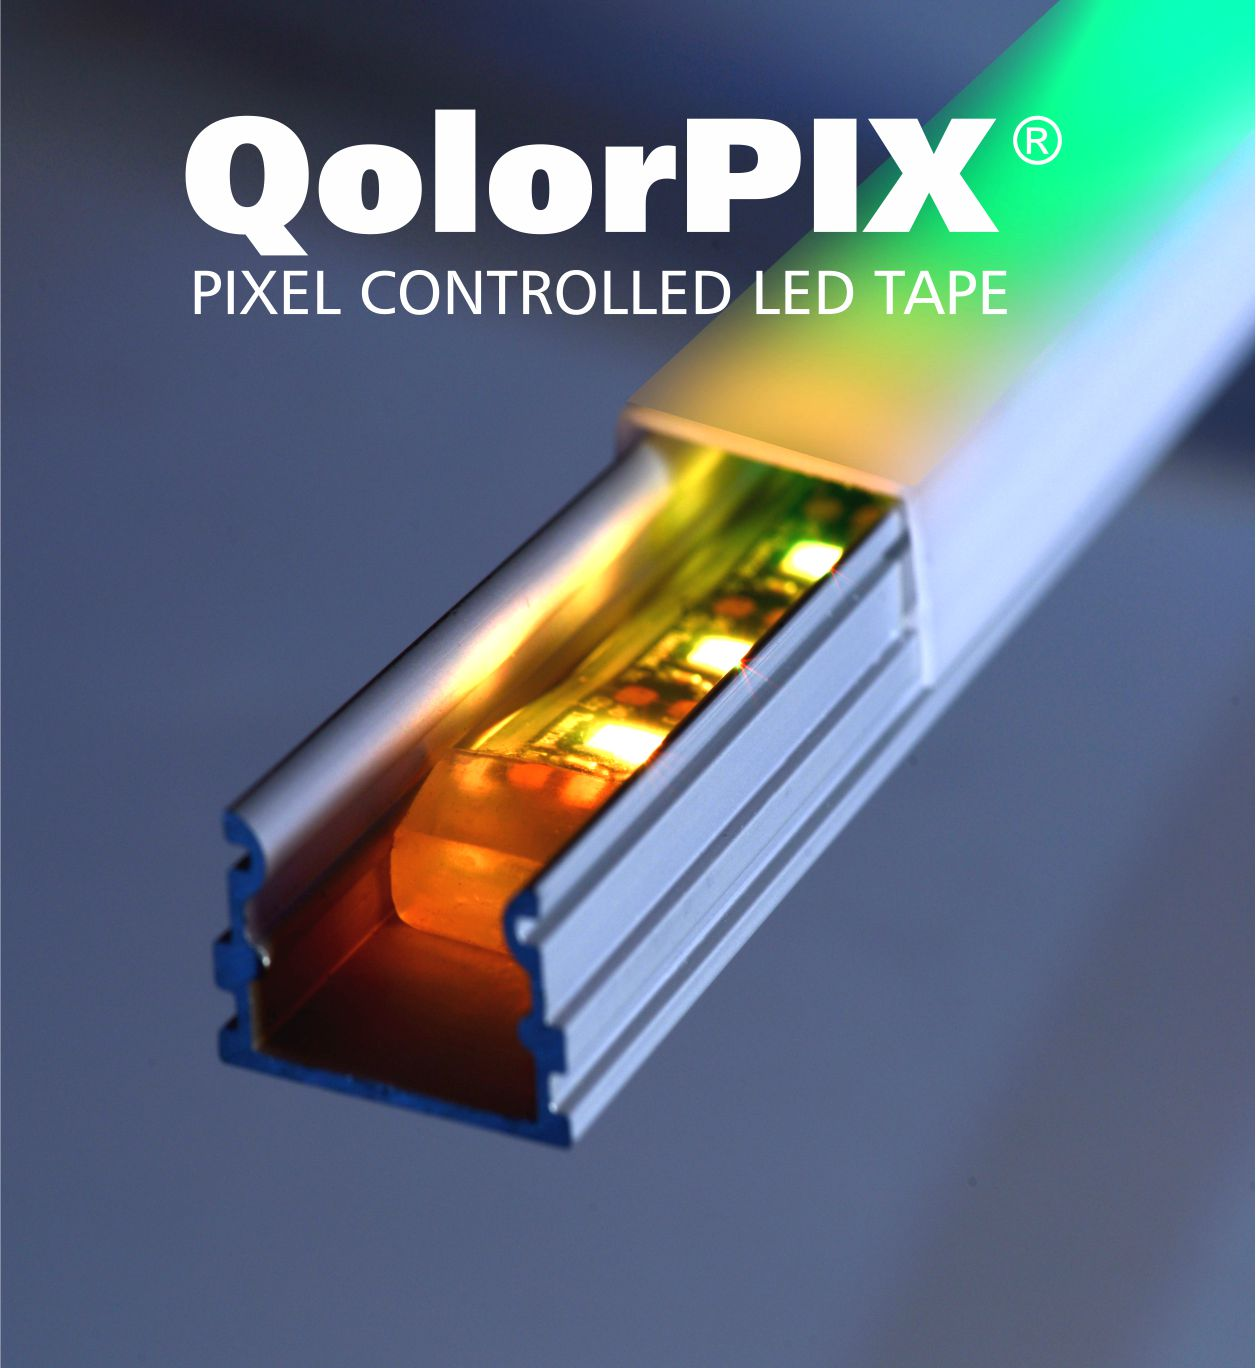 QolorPIX Pixel Controlled LED Tape in an extrusion with diffusor